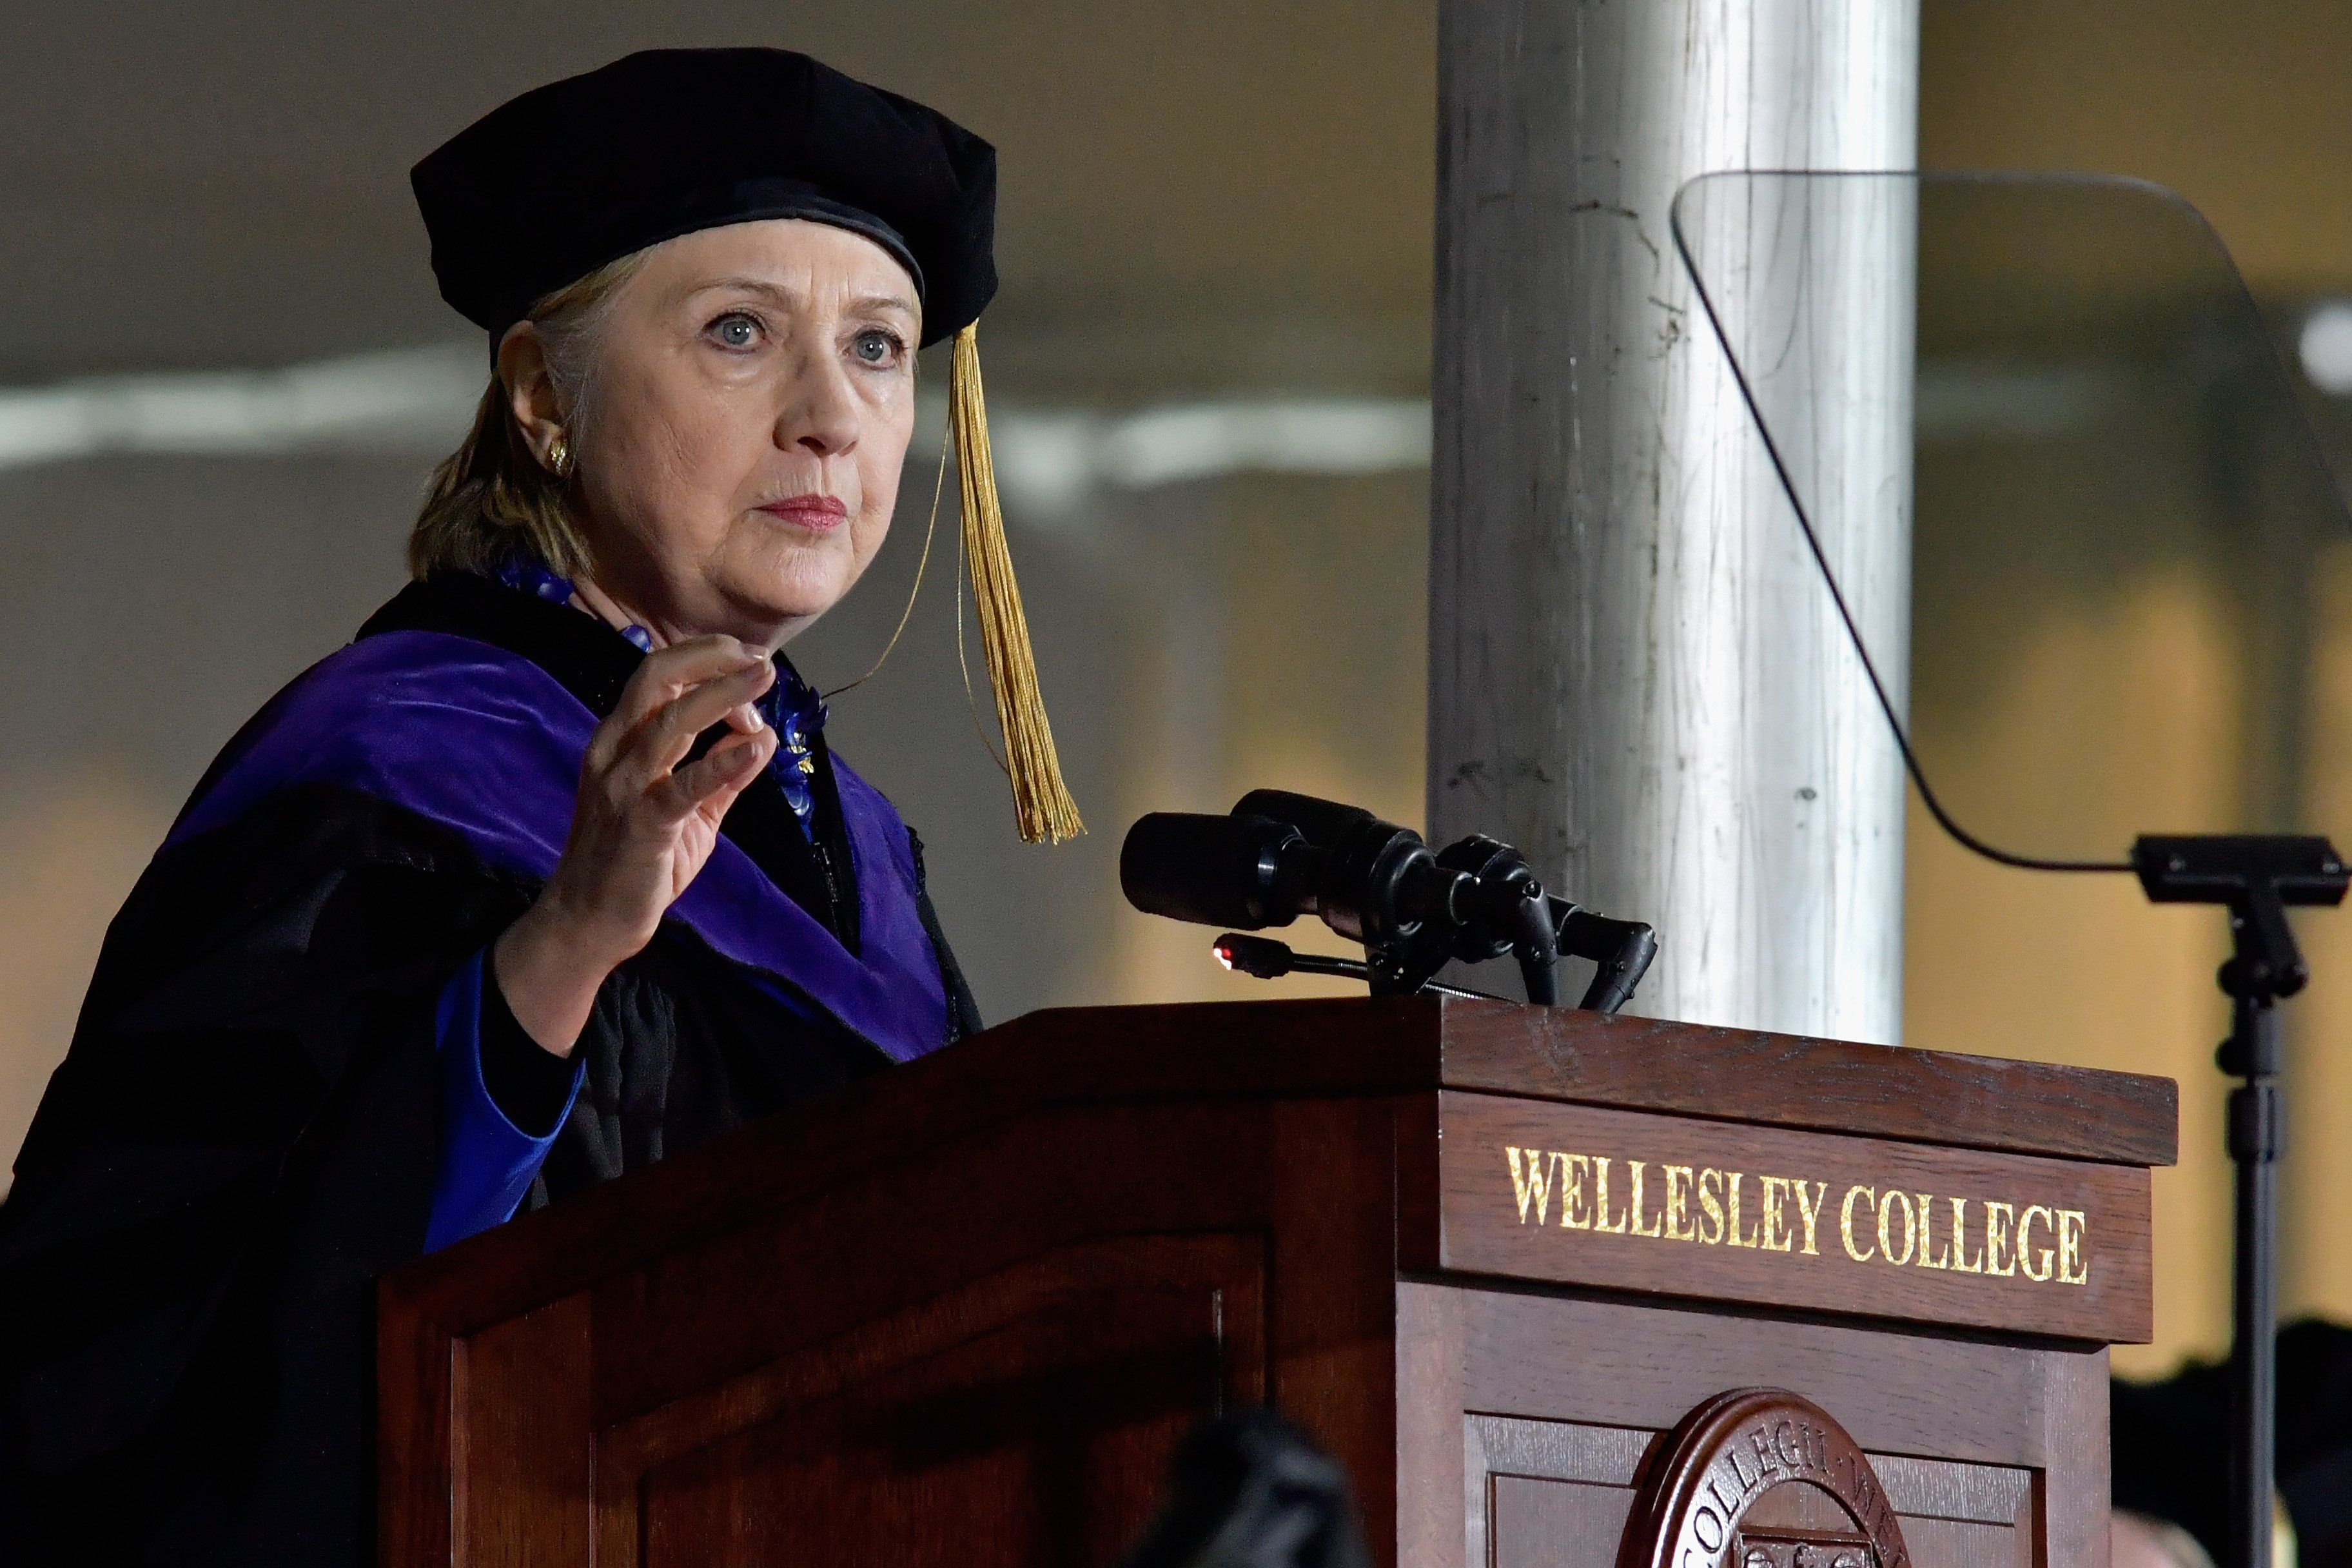 BOSTON, MA - MAY 26:  Hillary Clinton gave the Commencement Address at the Wellesley College 2017 166th Commencement Exercises at Wellesley College on May 26, 2017 in Boston, Massachusetts.  Clinton graduated from Wellesley College in 1969 and majored in political science.  (Photo by Paul Marotta/WireImage,)